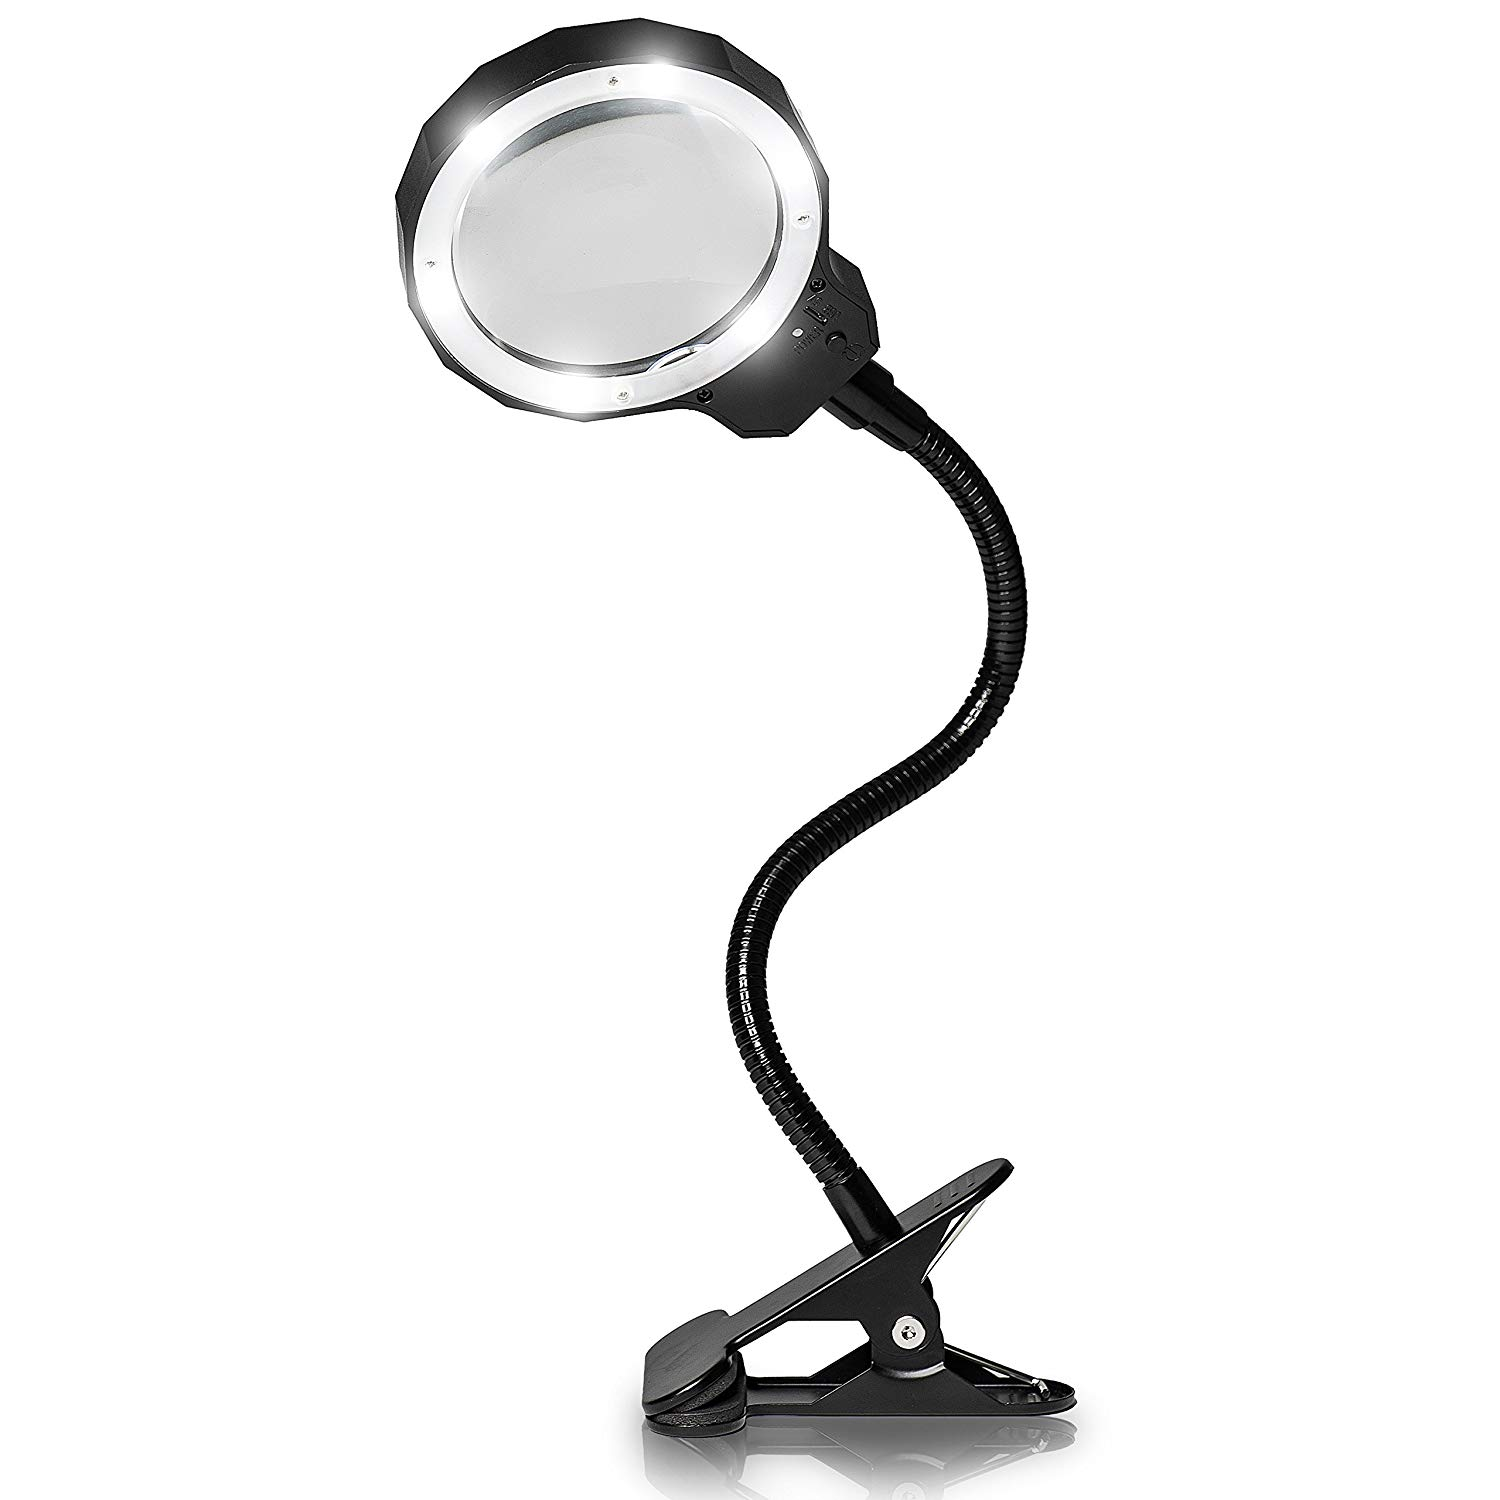 Magnifying Daylight Lamp